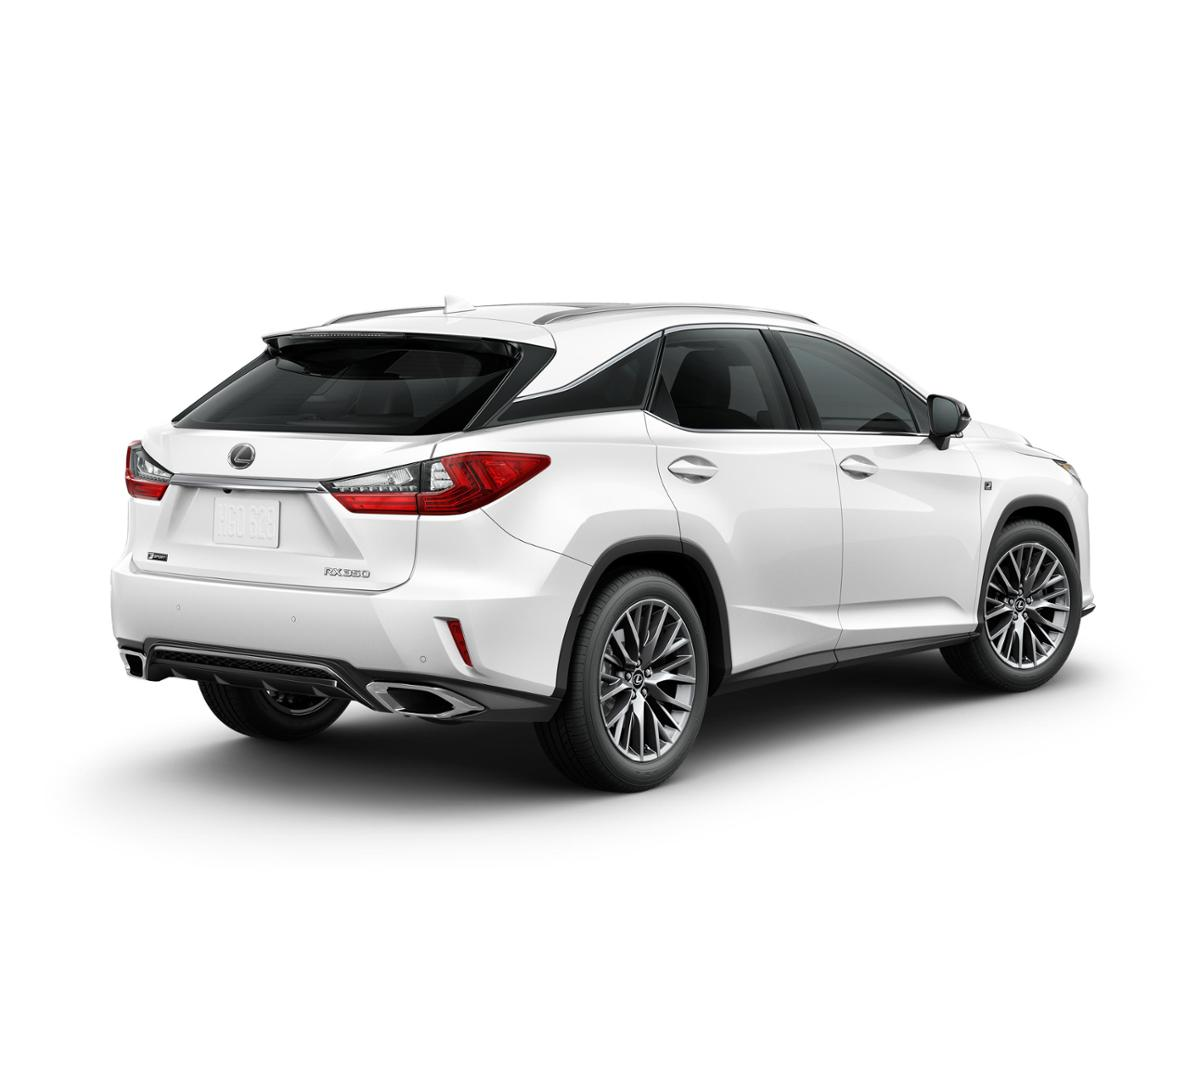 New Ultra White 2017 Lexus Rx 350 F Sport For Sale Fremont Ca Magnussen Lexus Of Fremont